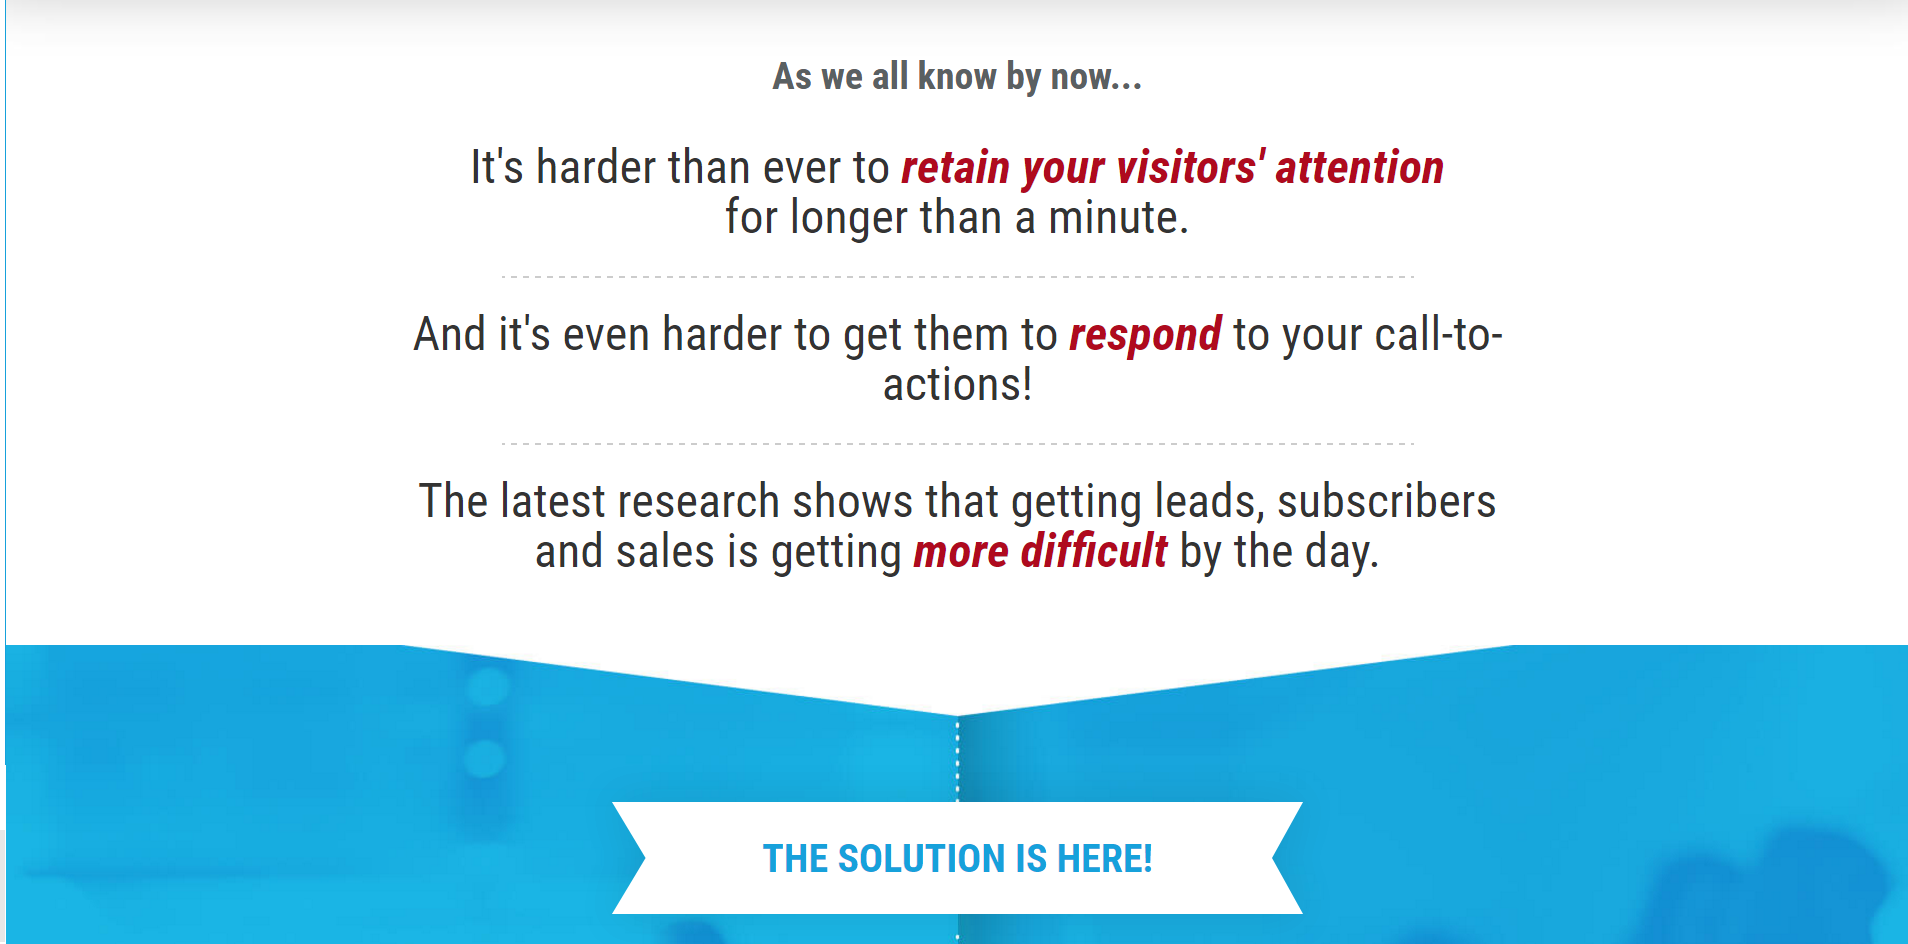 Retain your visitor's attention